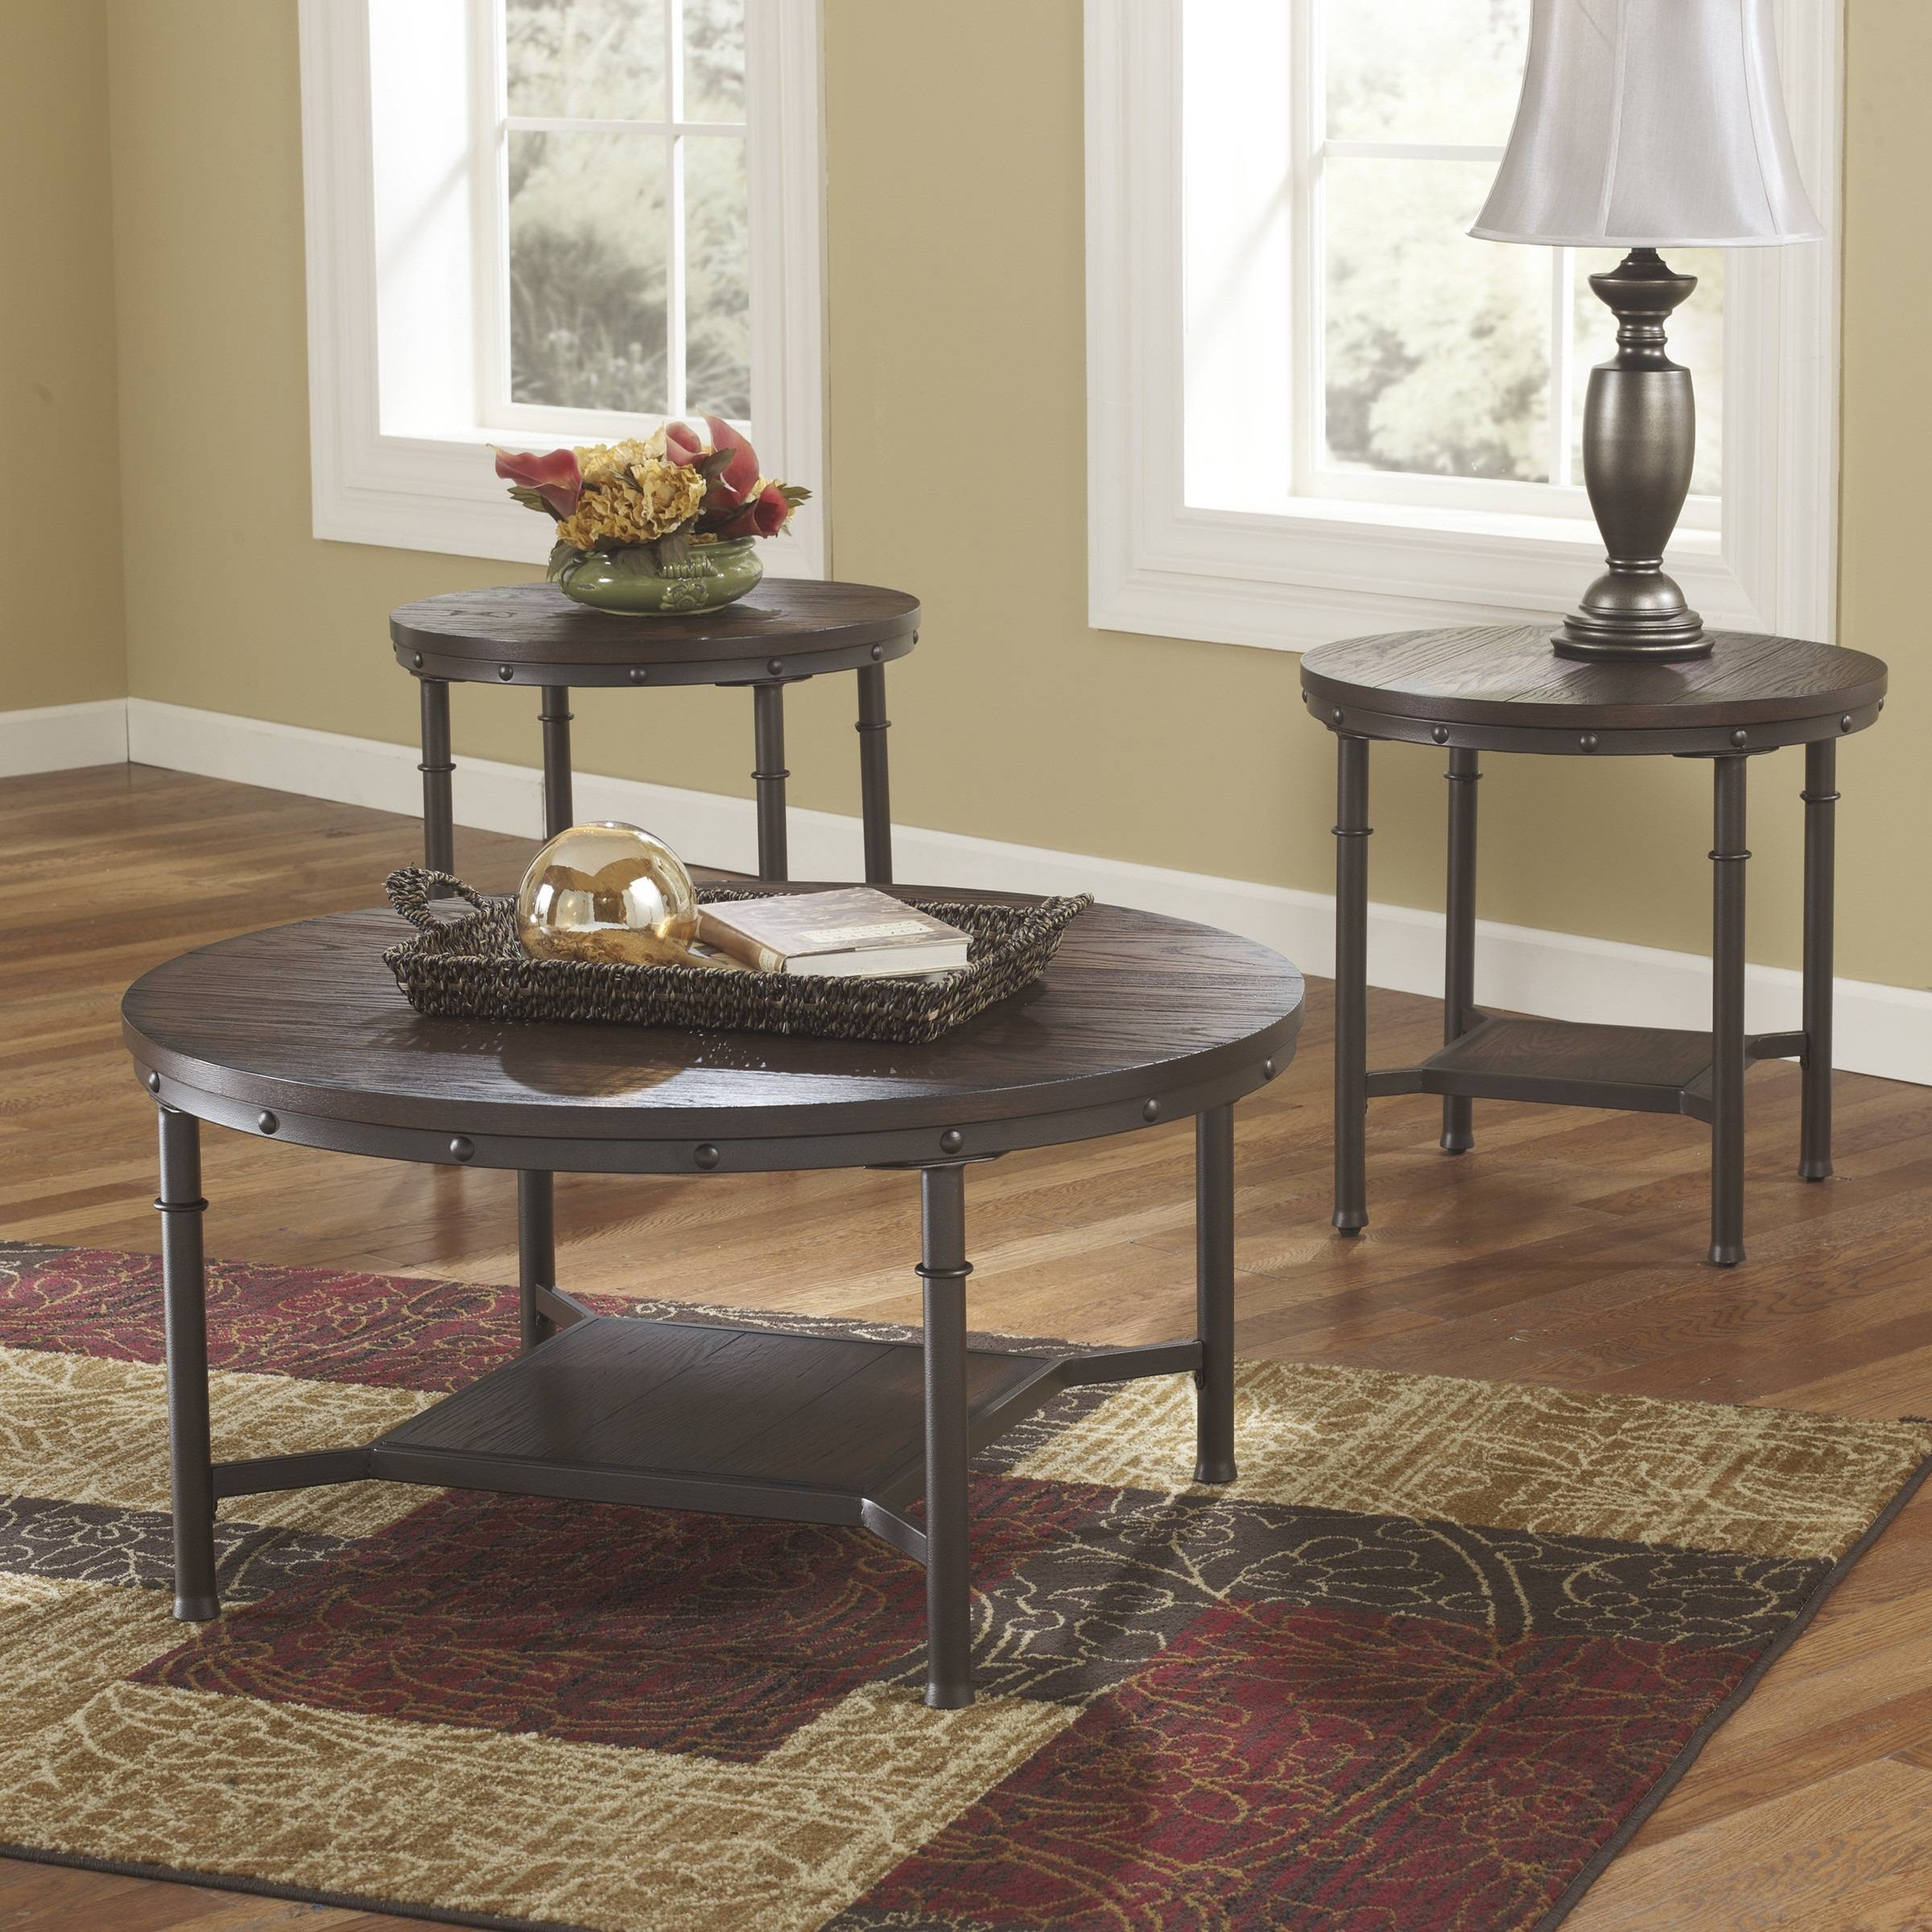 Dining Room : 2017 Modern Wooden Coffee Table Sets Small Wooden for Round Red Coffee Tables (Image 7 of 30)